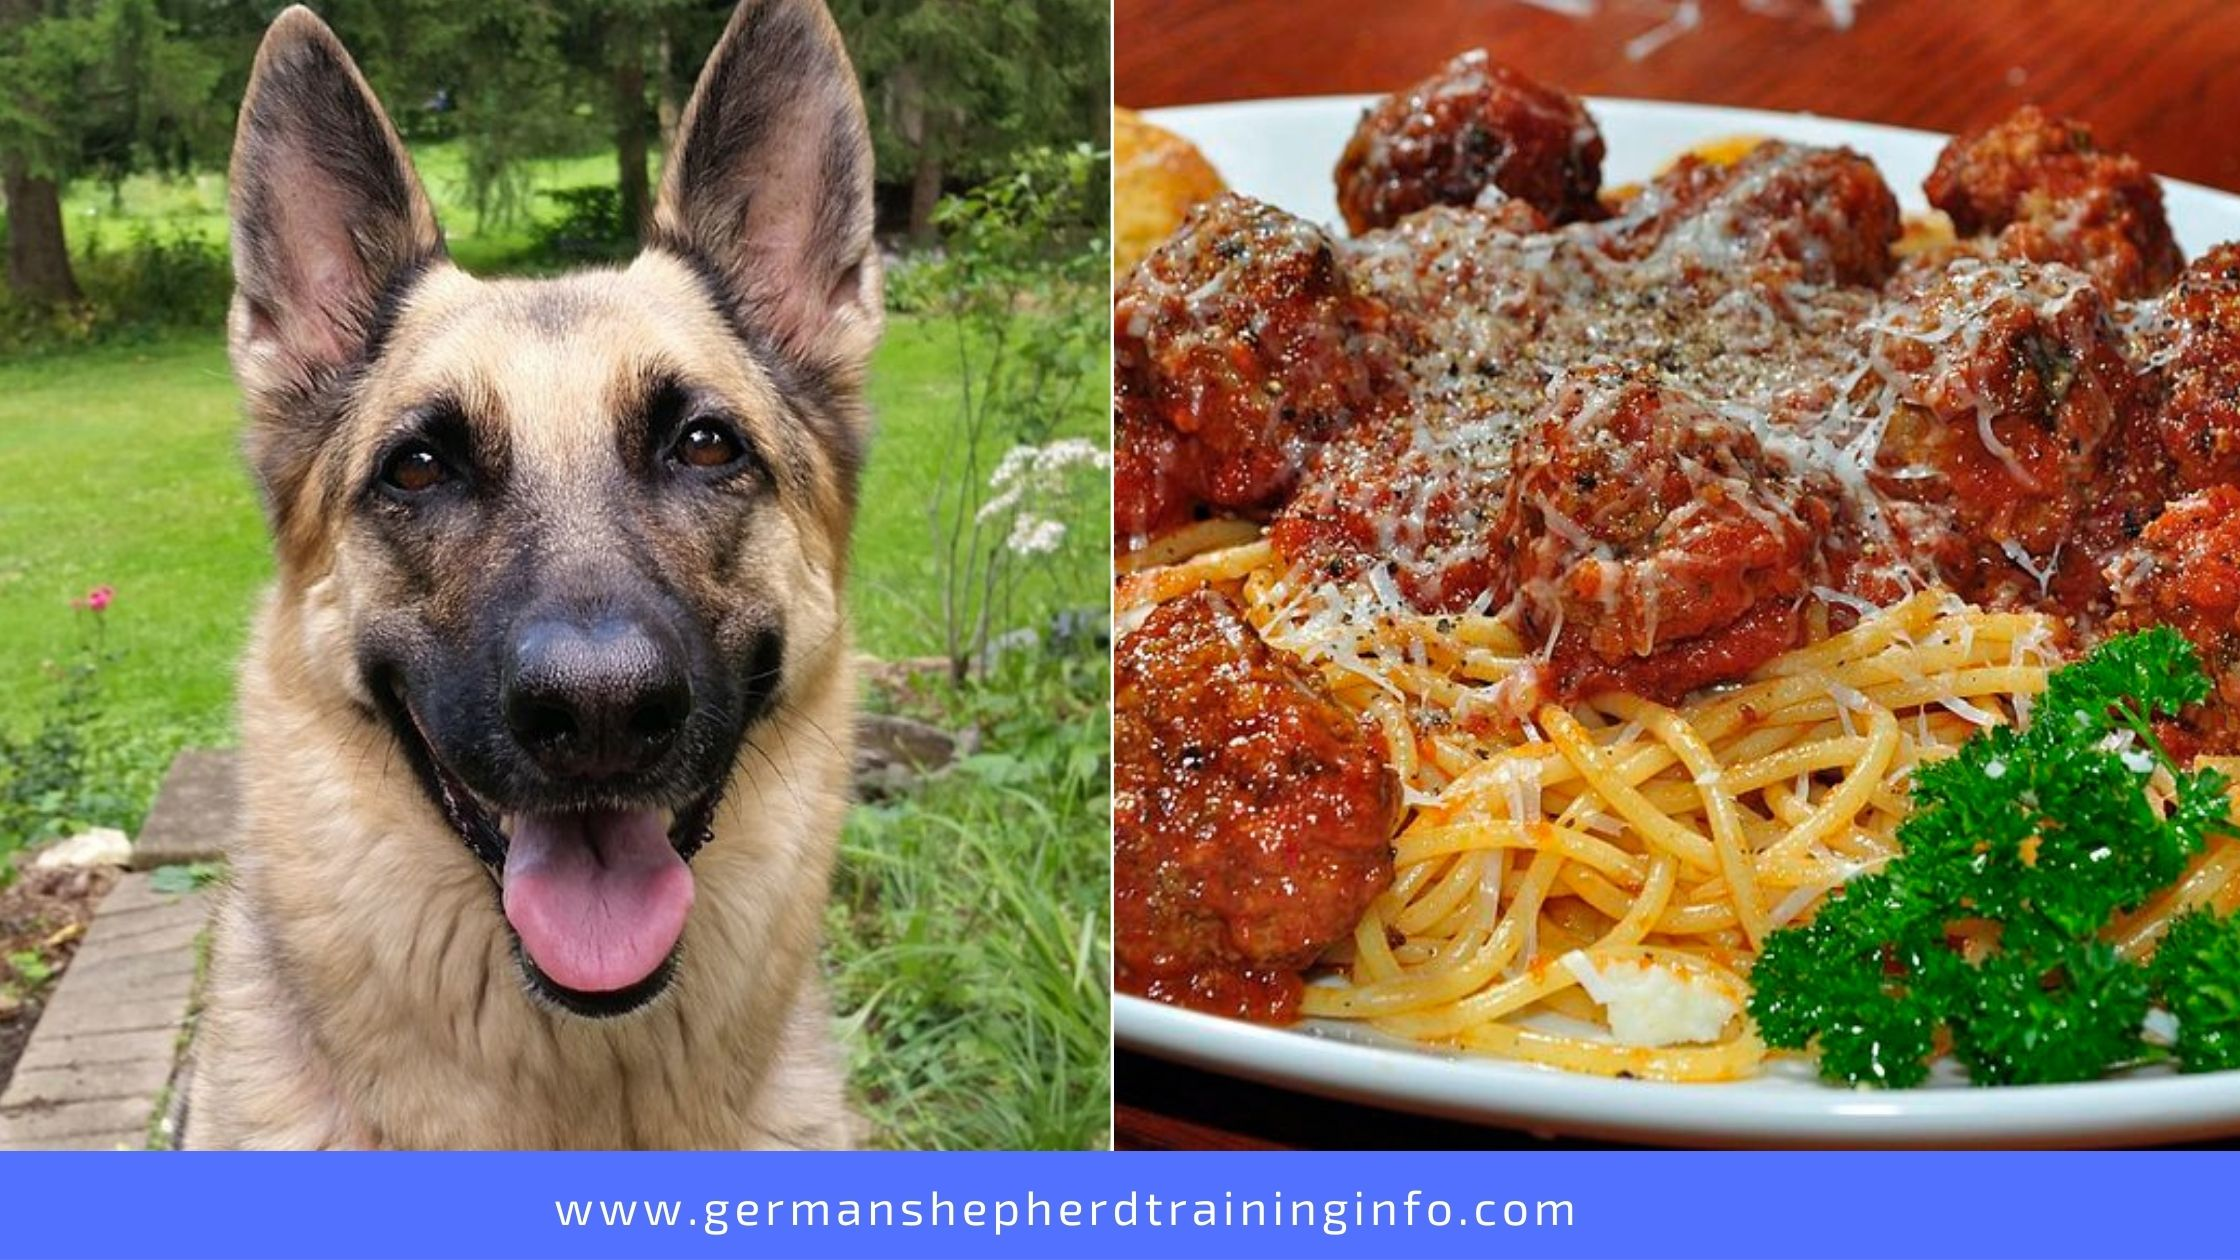 Can Dogs Eat Spaghetti And Meatballs?